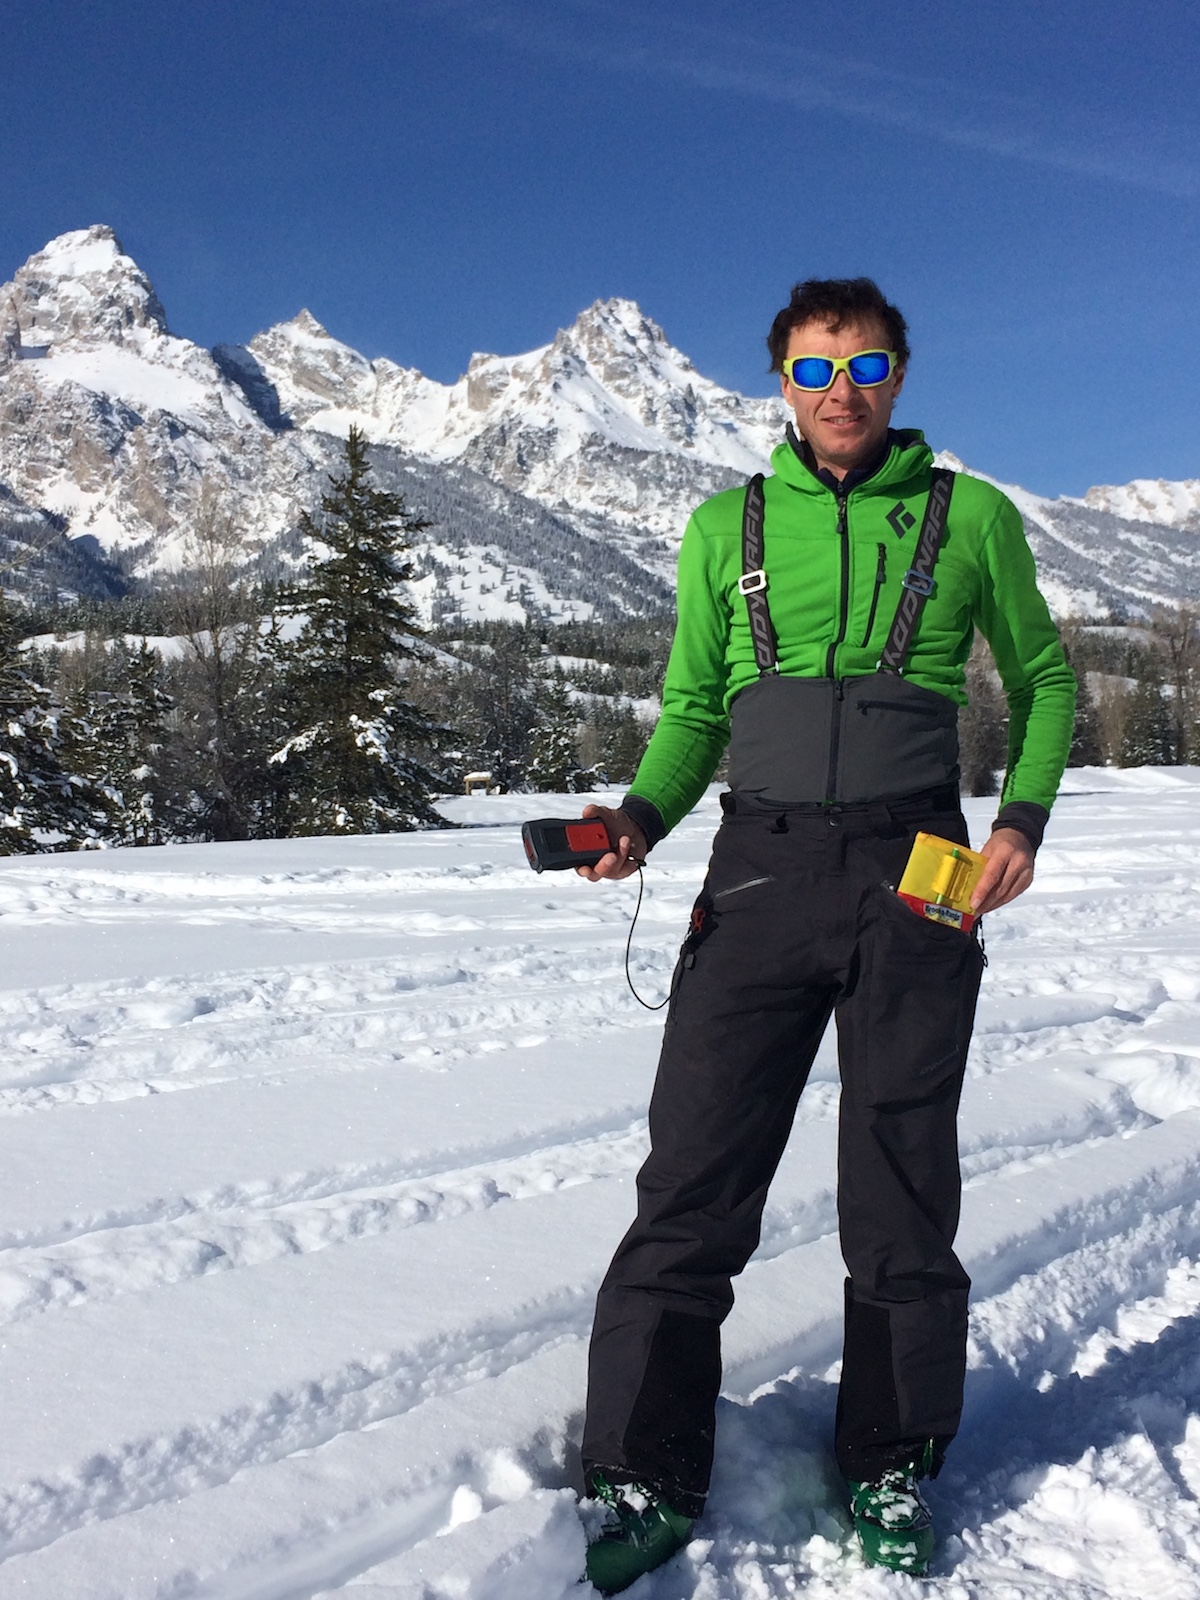 Mike Lewis demonstrates the compatibility of the Yotei Pants with an avalanche transceiver and field book during a trip to the Tetons in Wyoming. [Photo] Chris Brown